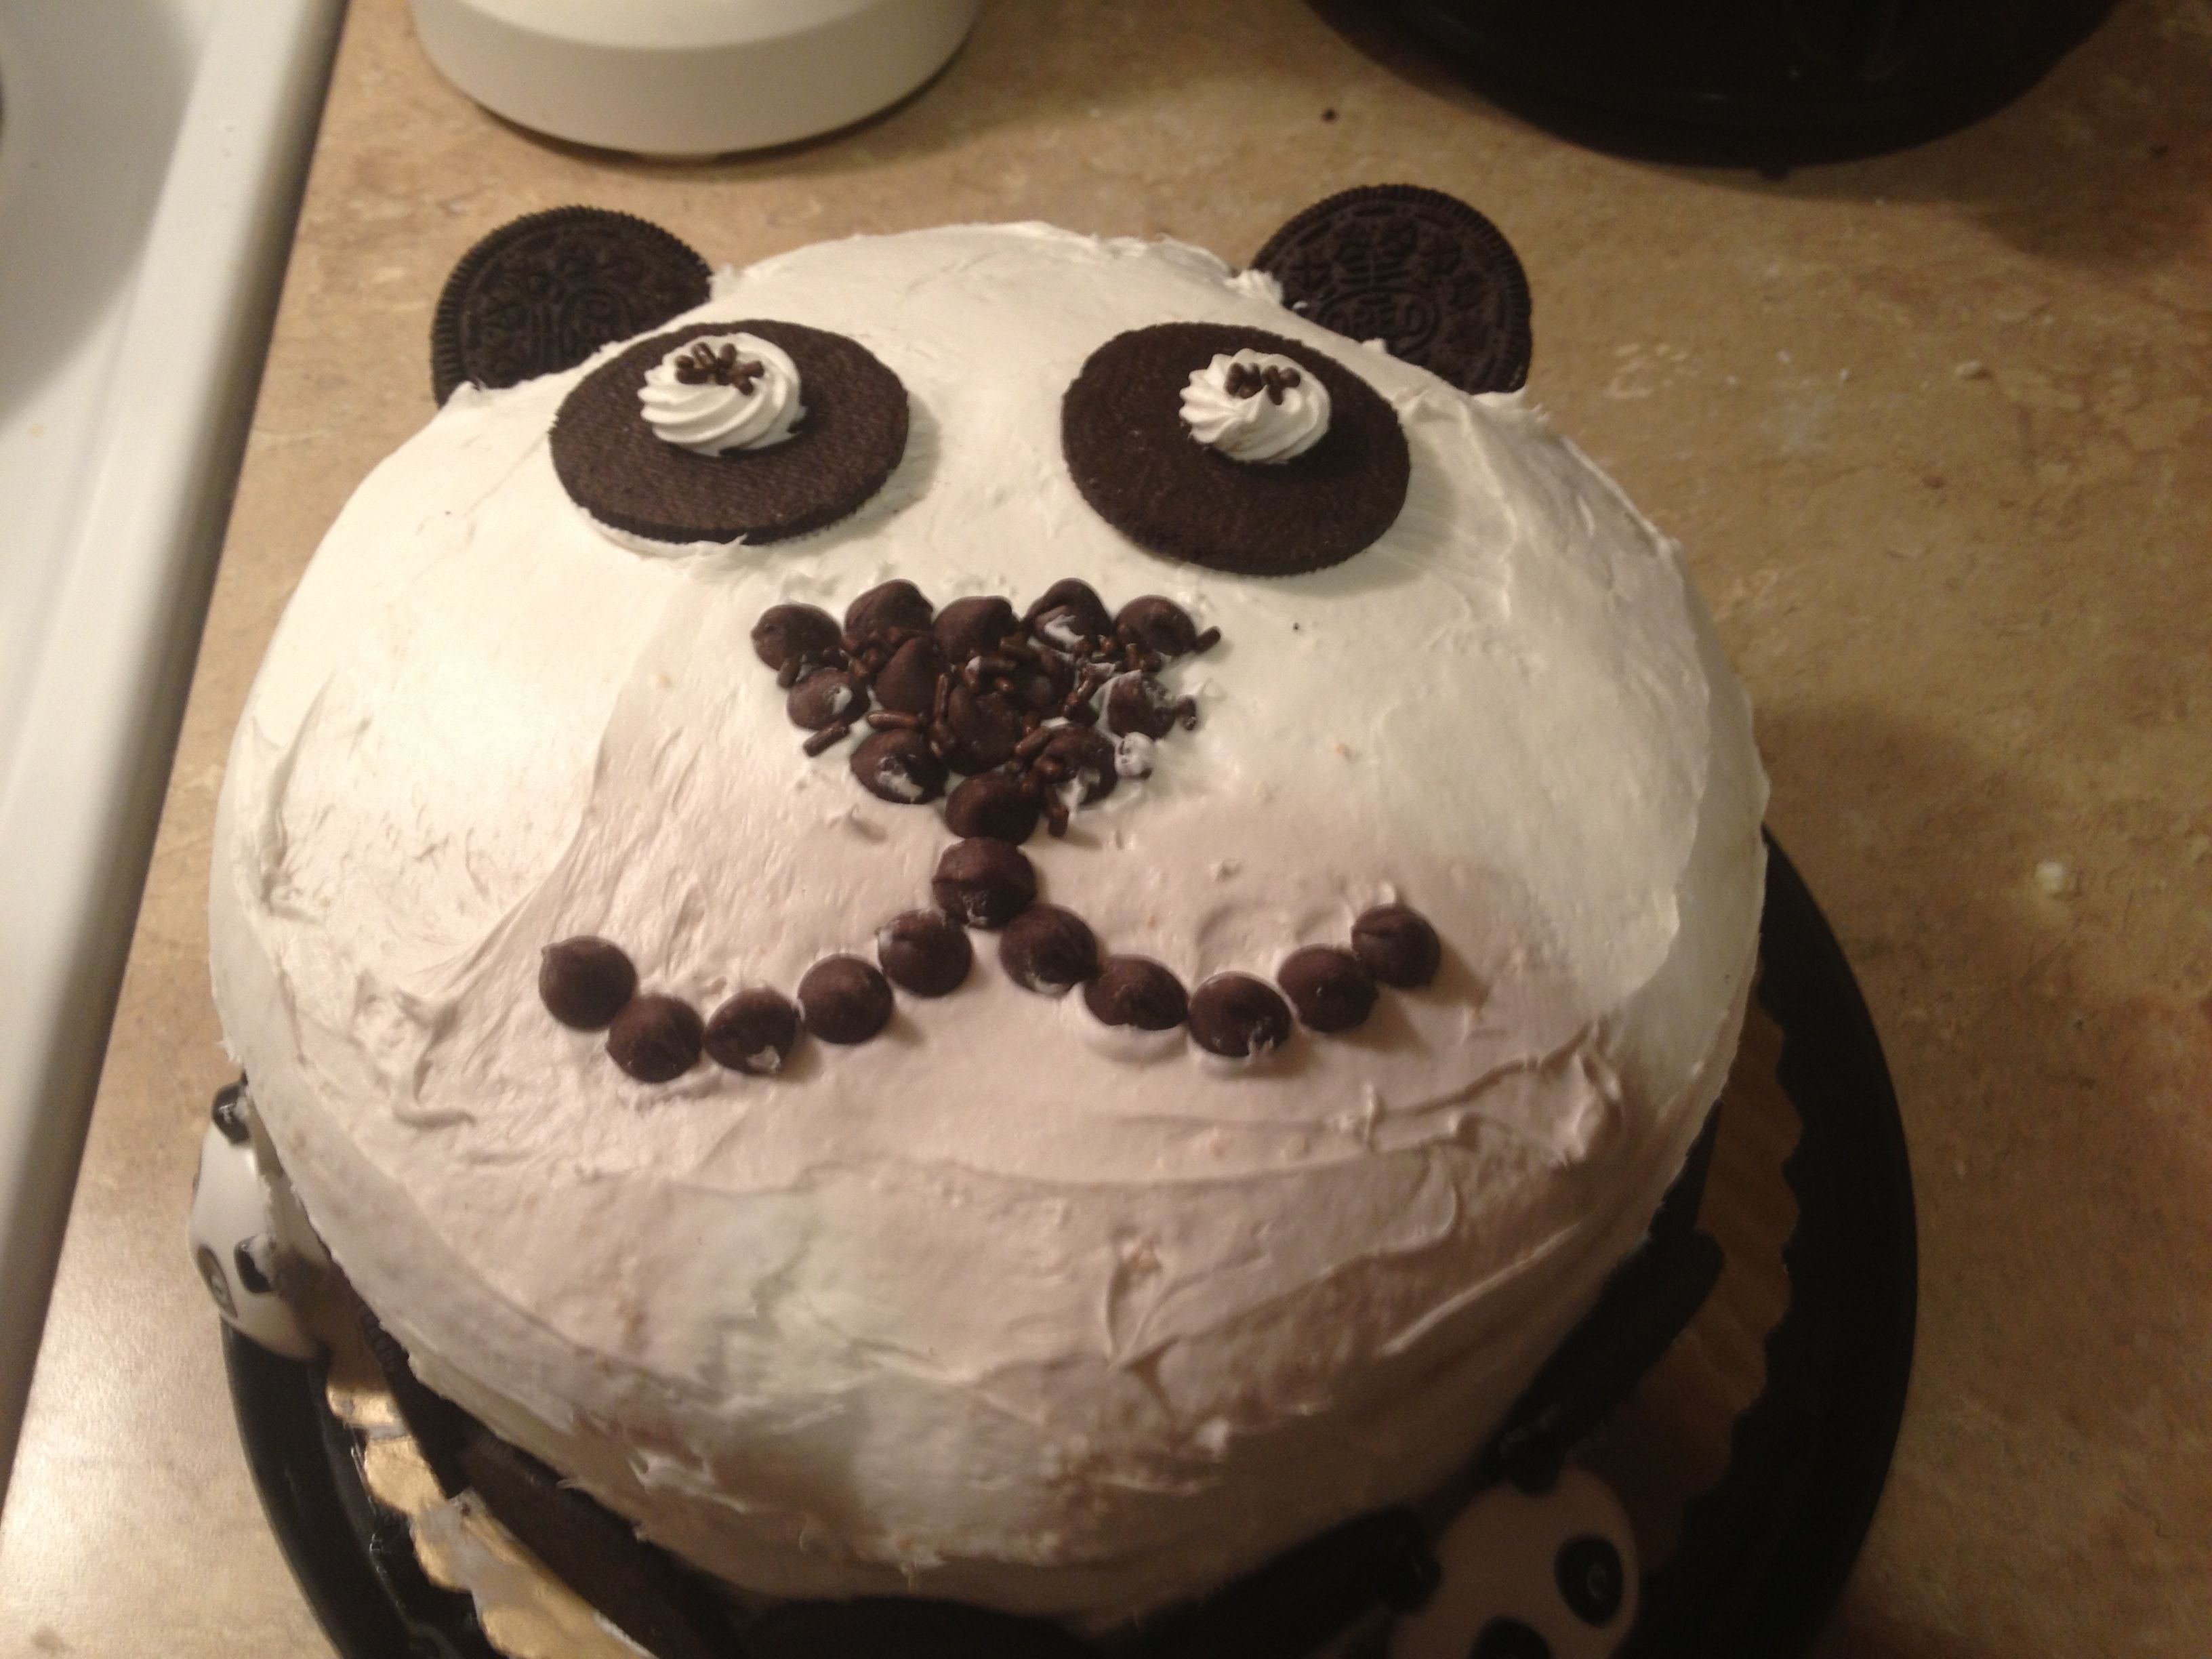 Layered cake with Oreo cookies, chocolate sprinkles, and chocolate chips.